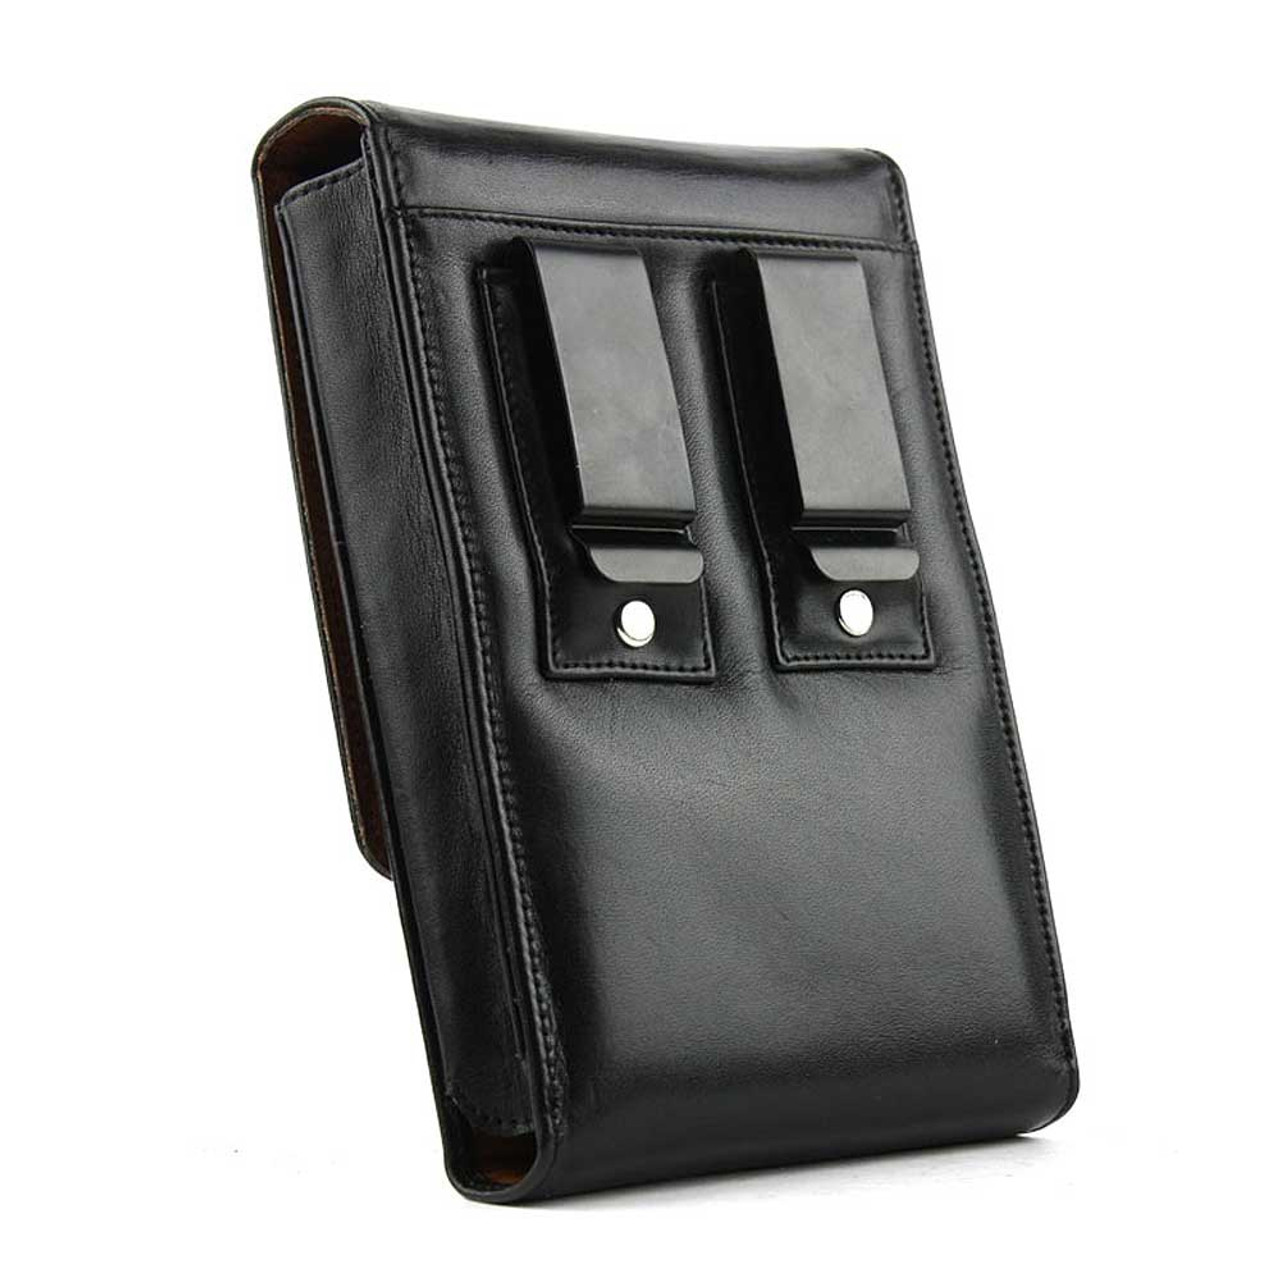 Sig Sauer 1911 Ultra Compact Sneaky Pete Holster (Belt Clip)